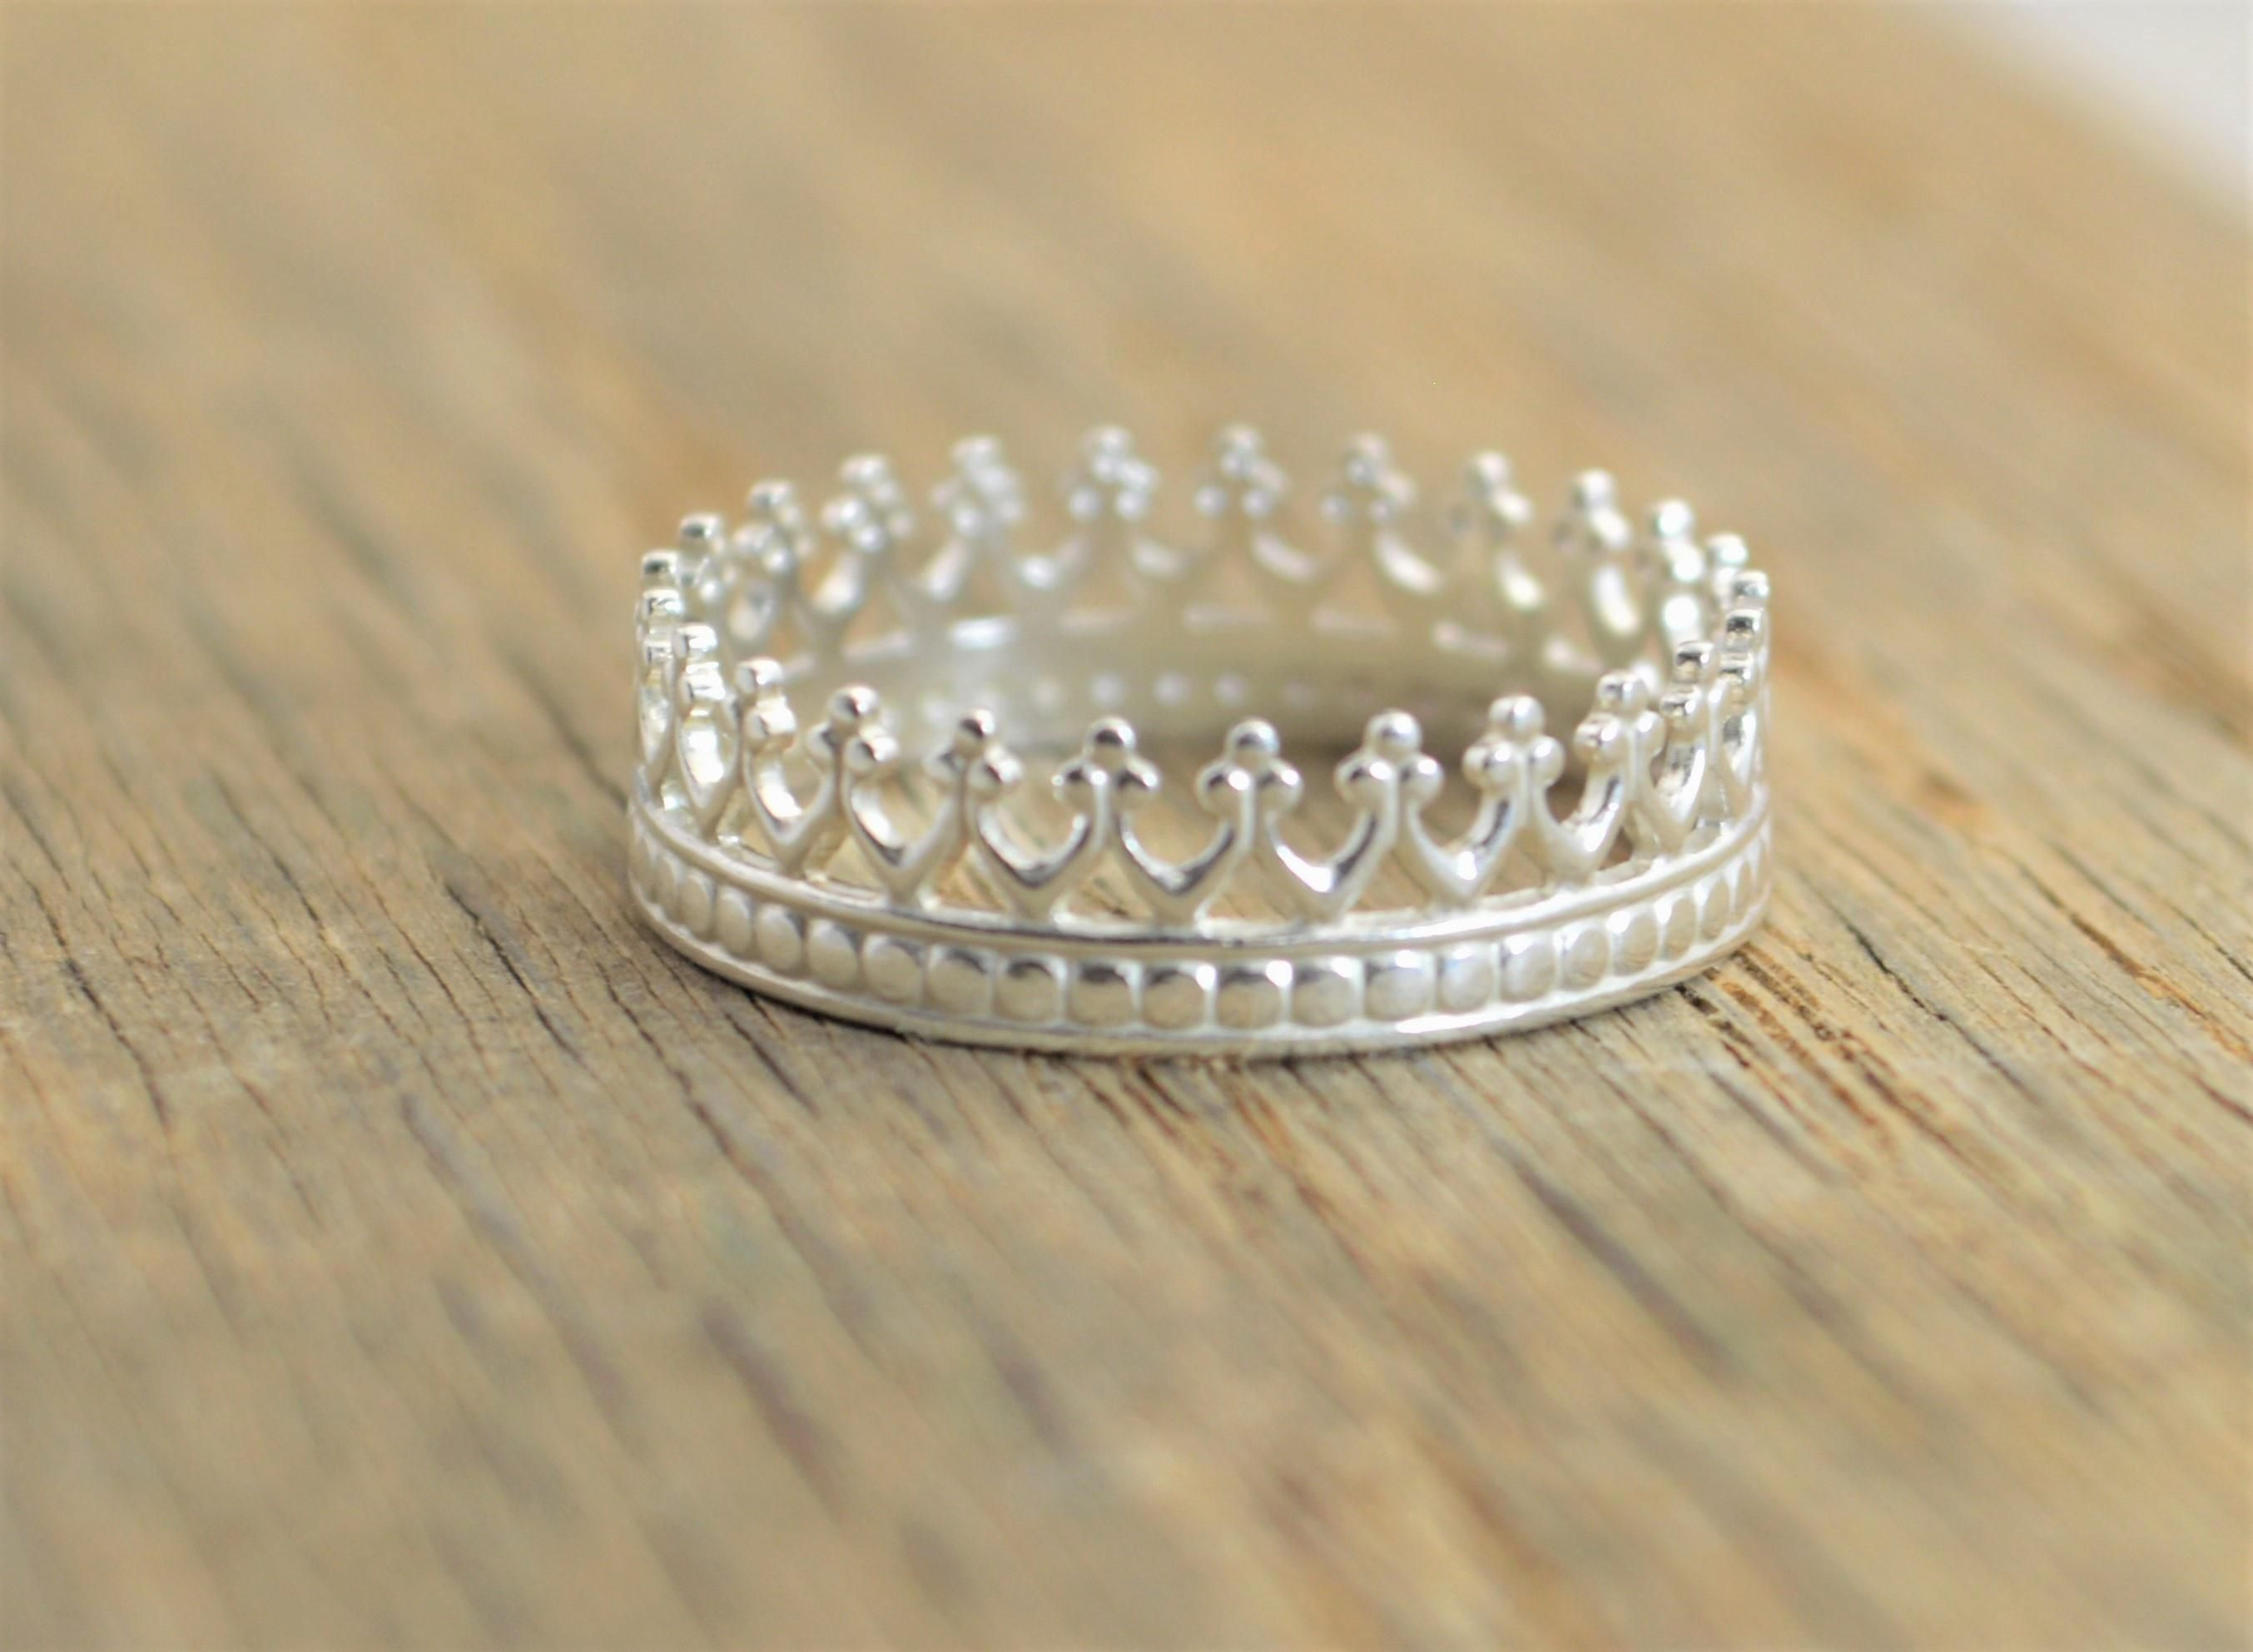 Queen Crown Rings Tiara ring, Real gold jewelry, Silver